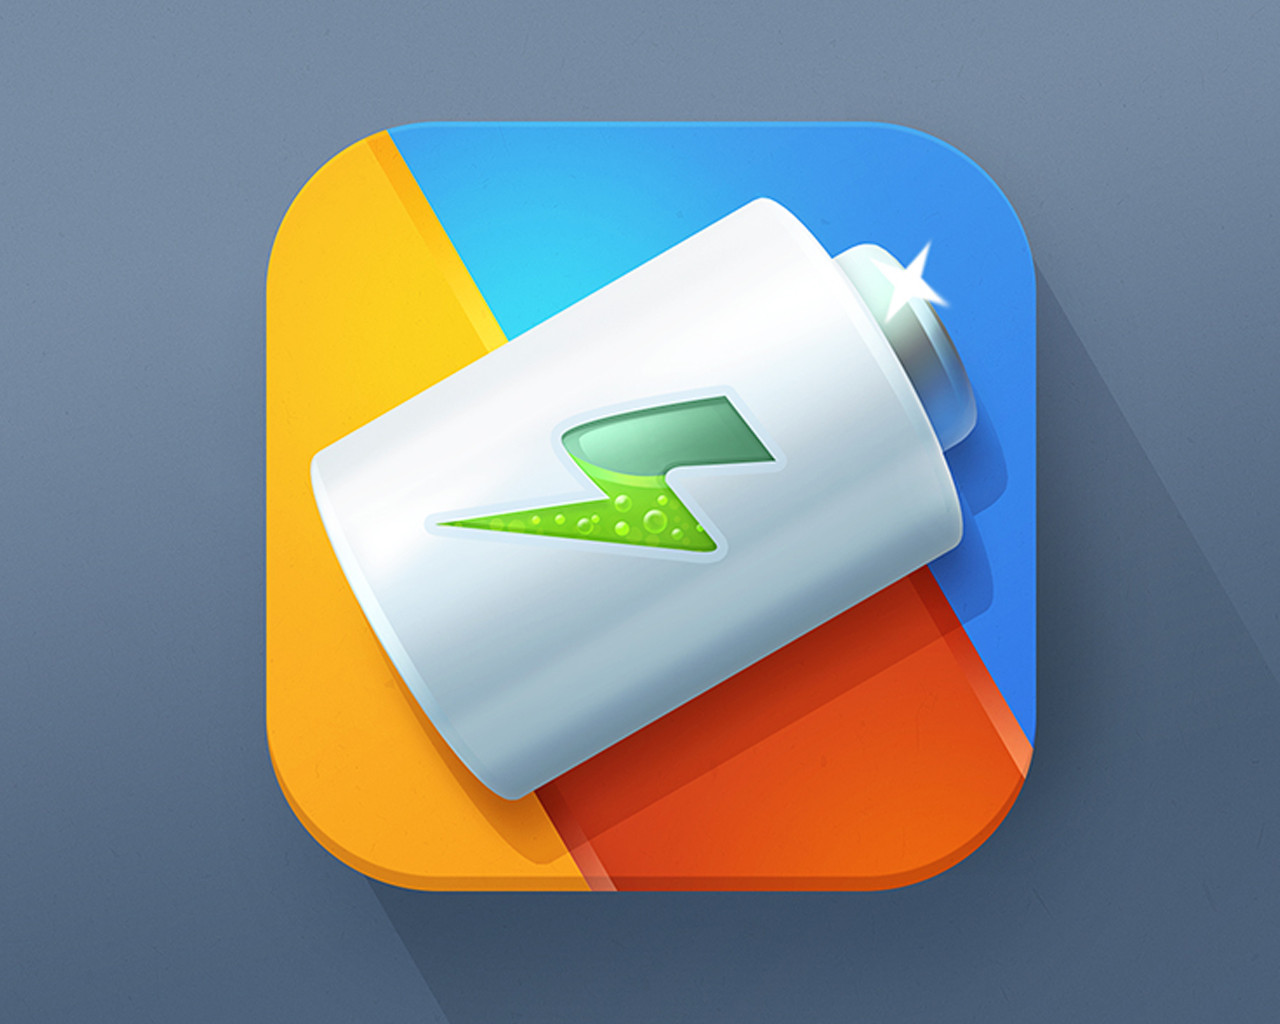 IOS / Android / Web App Icon Design (2D/3D) By Zomo